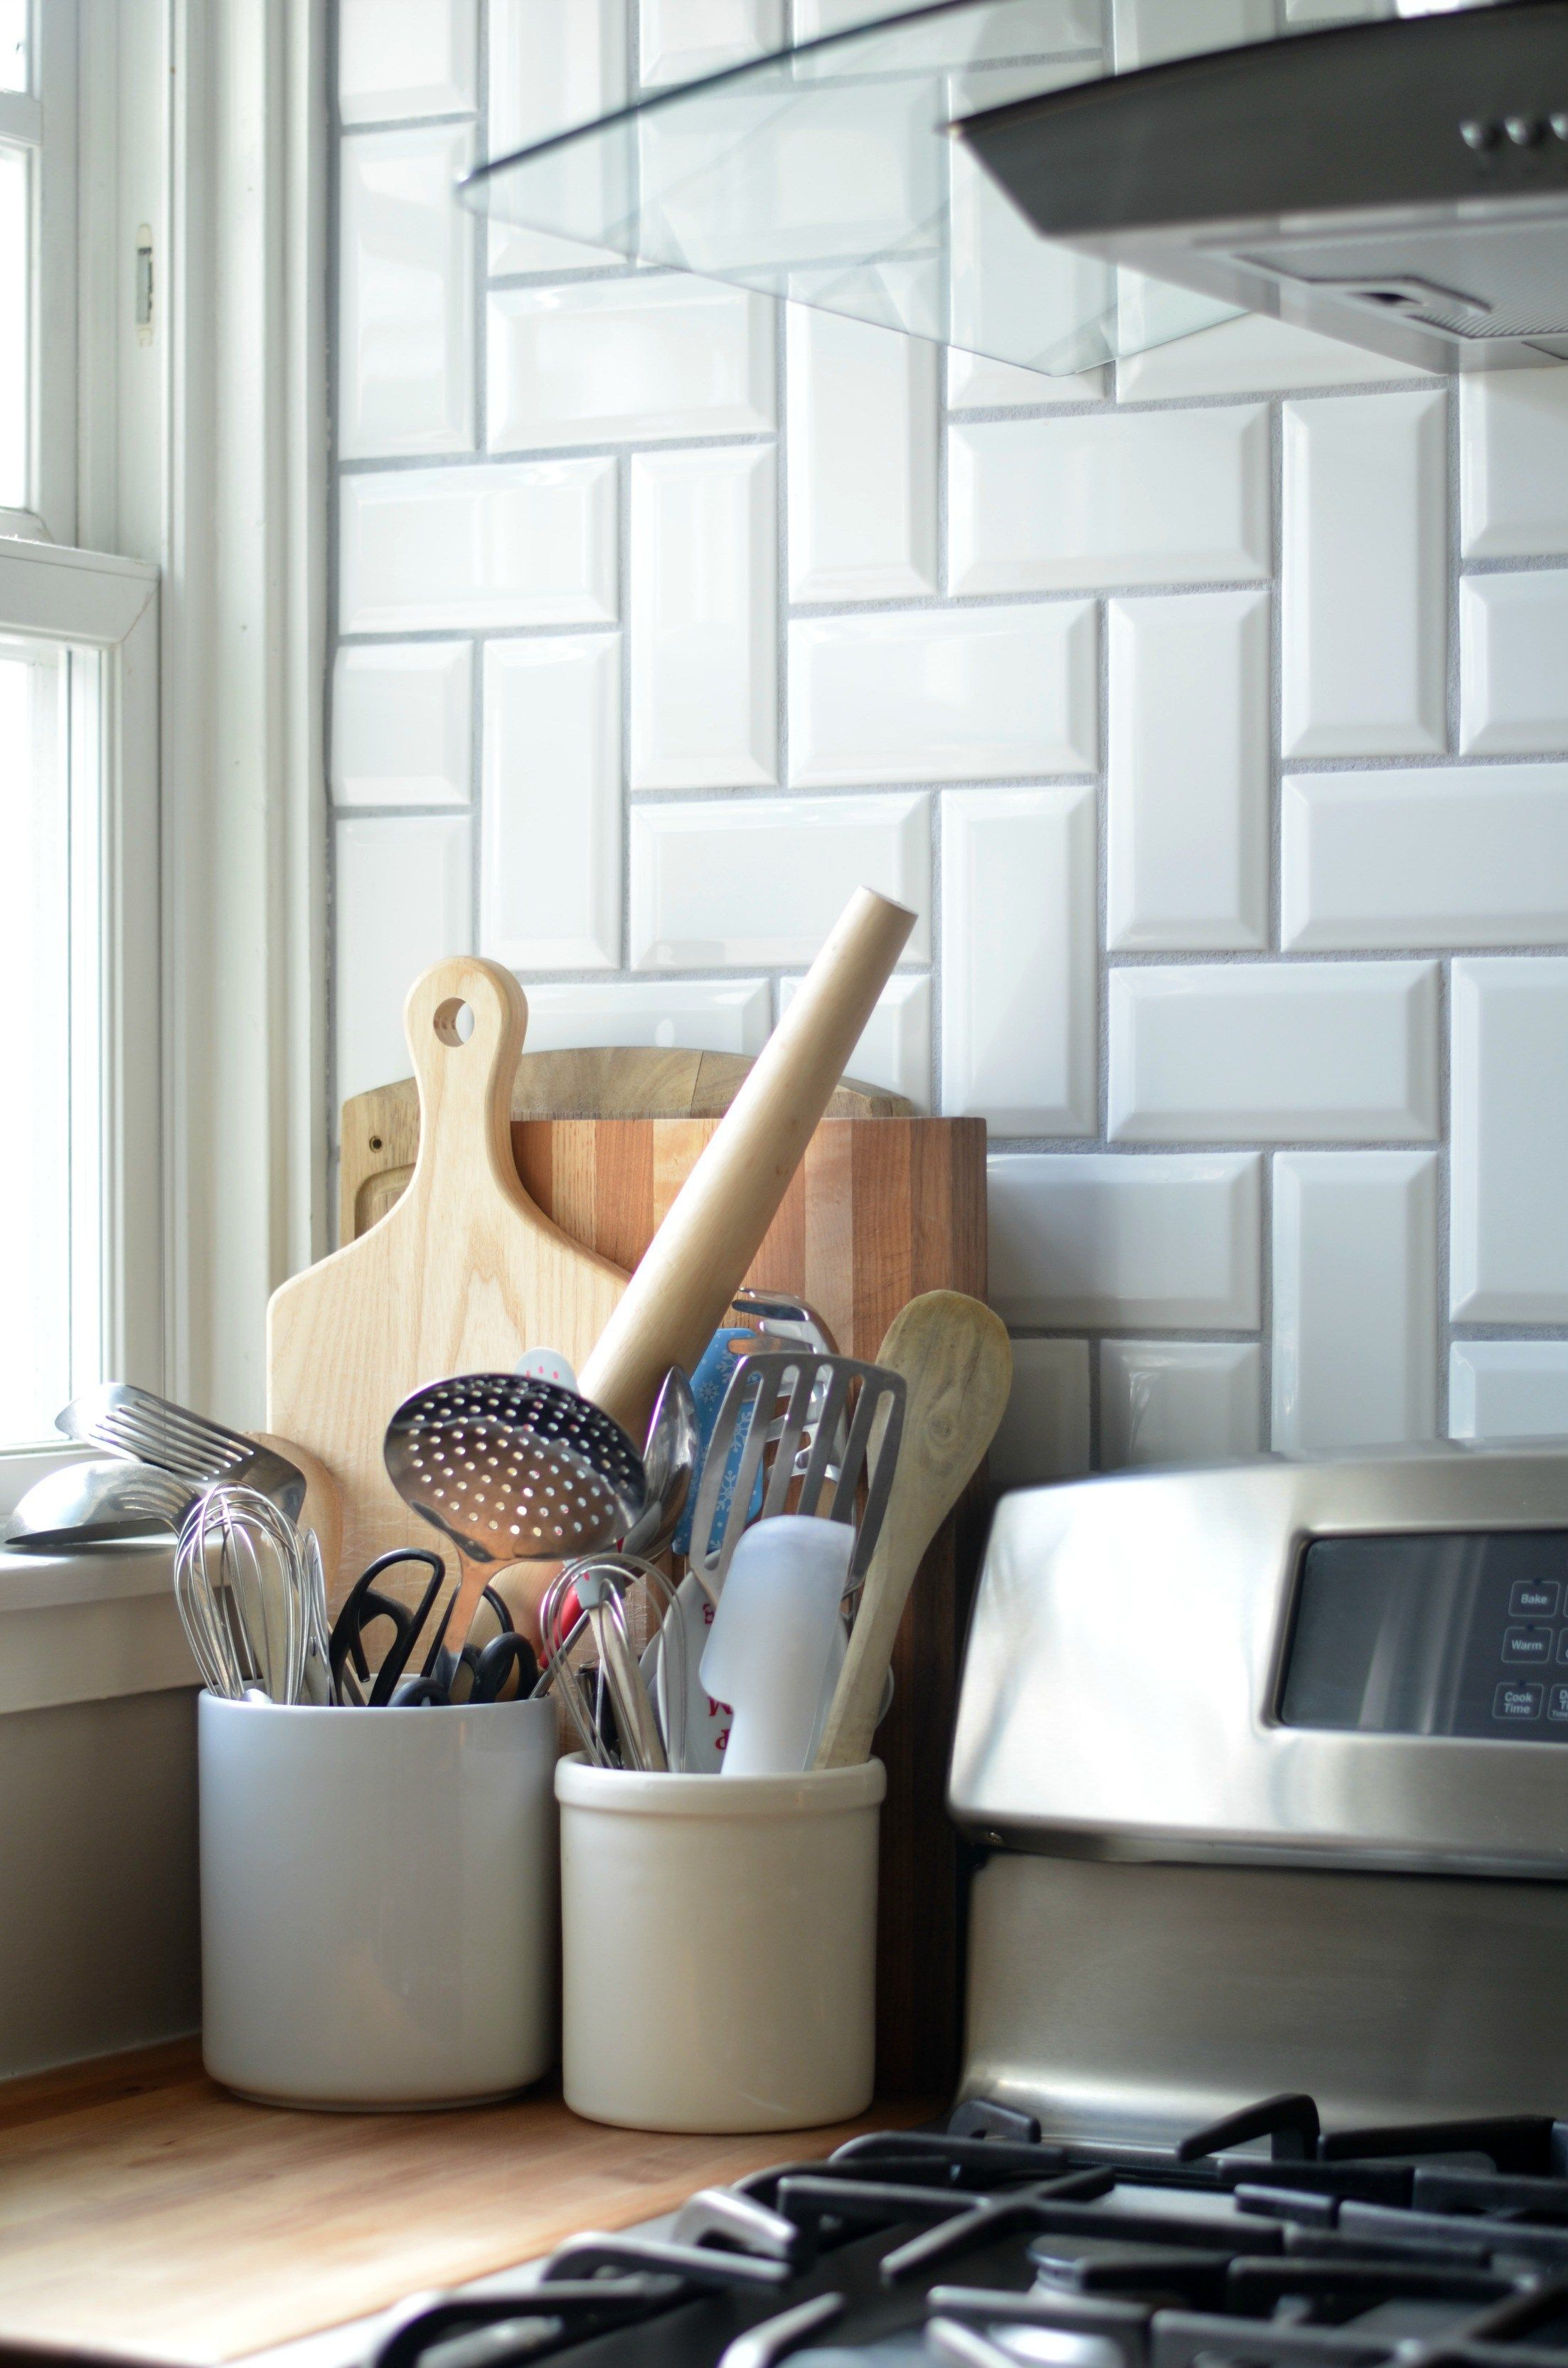 subway tile subway tiles subway tile patterns herringbone backsplash